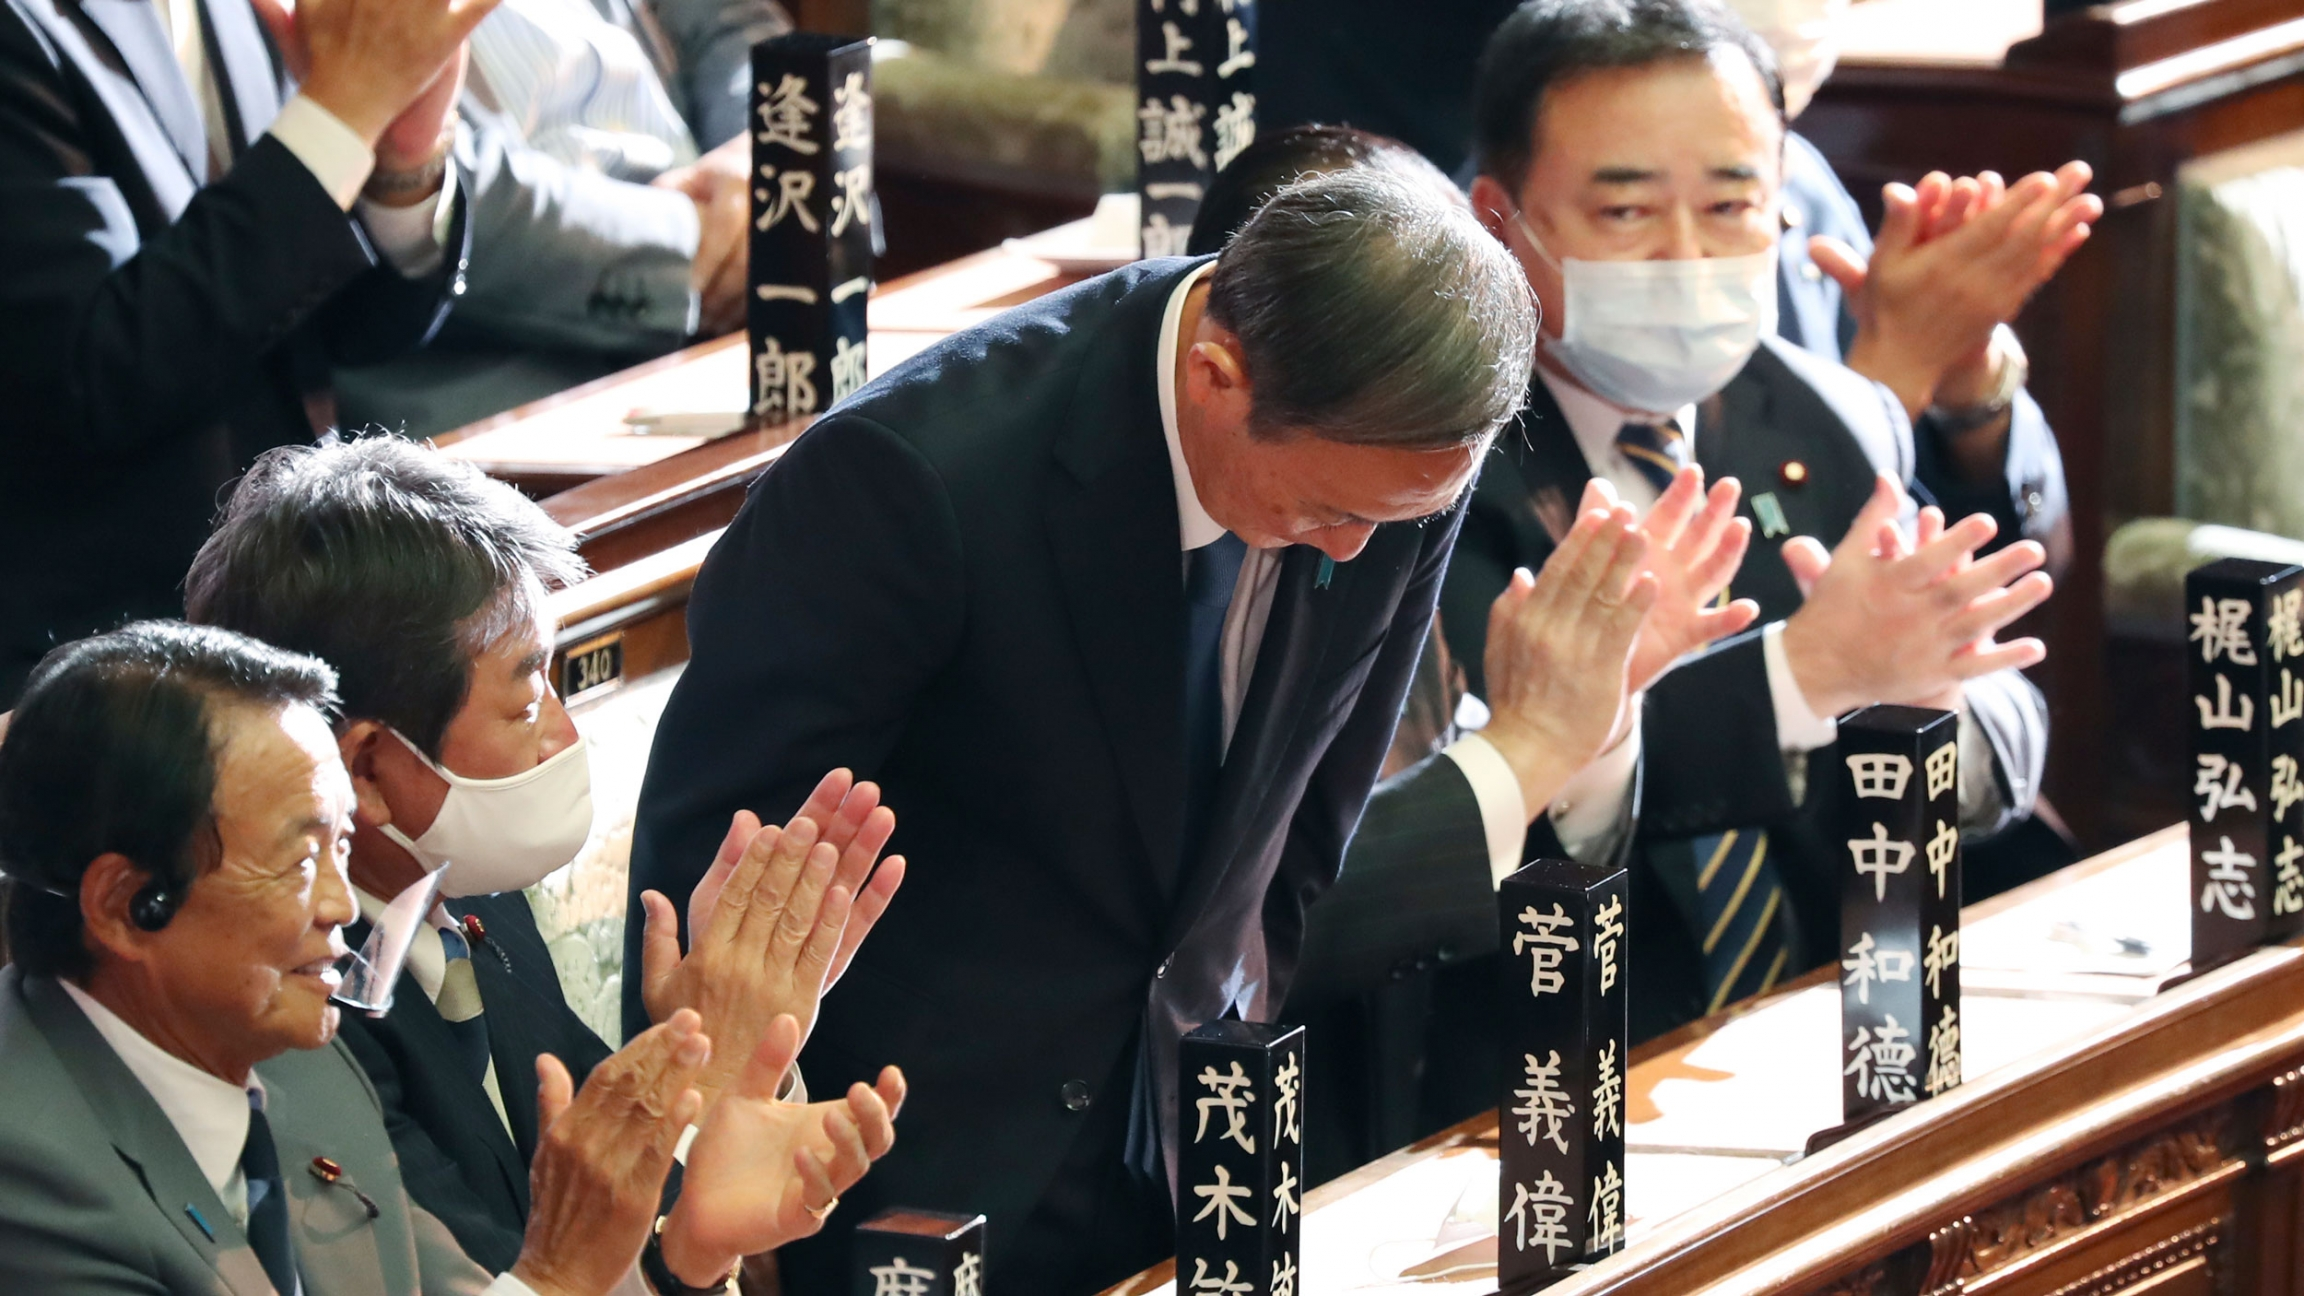 Yoshihide Suga is shown bowing and surrounded by parliamentarians on either side clapping their hands.